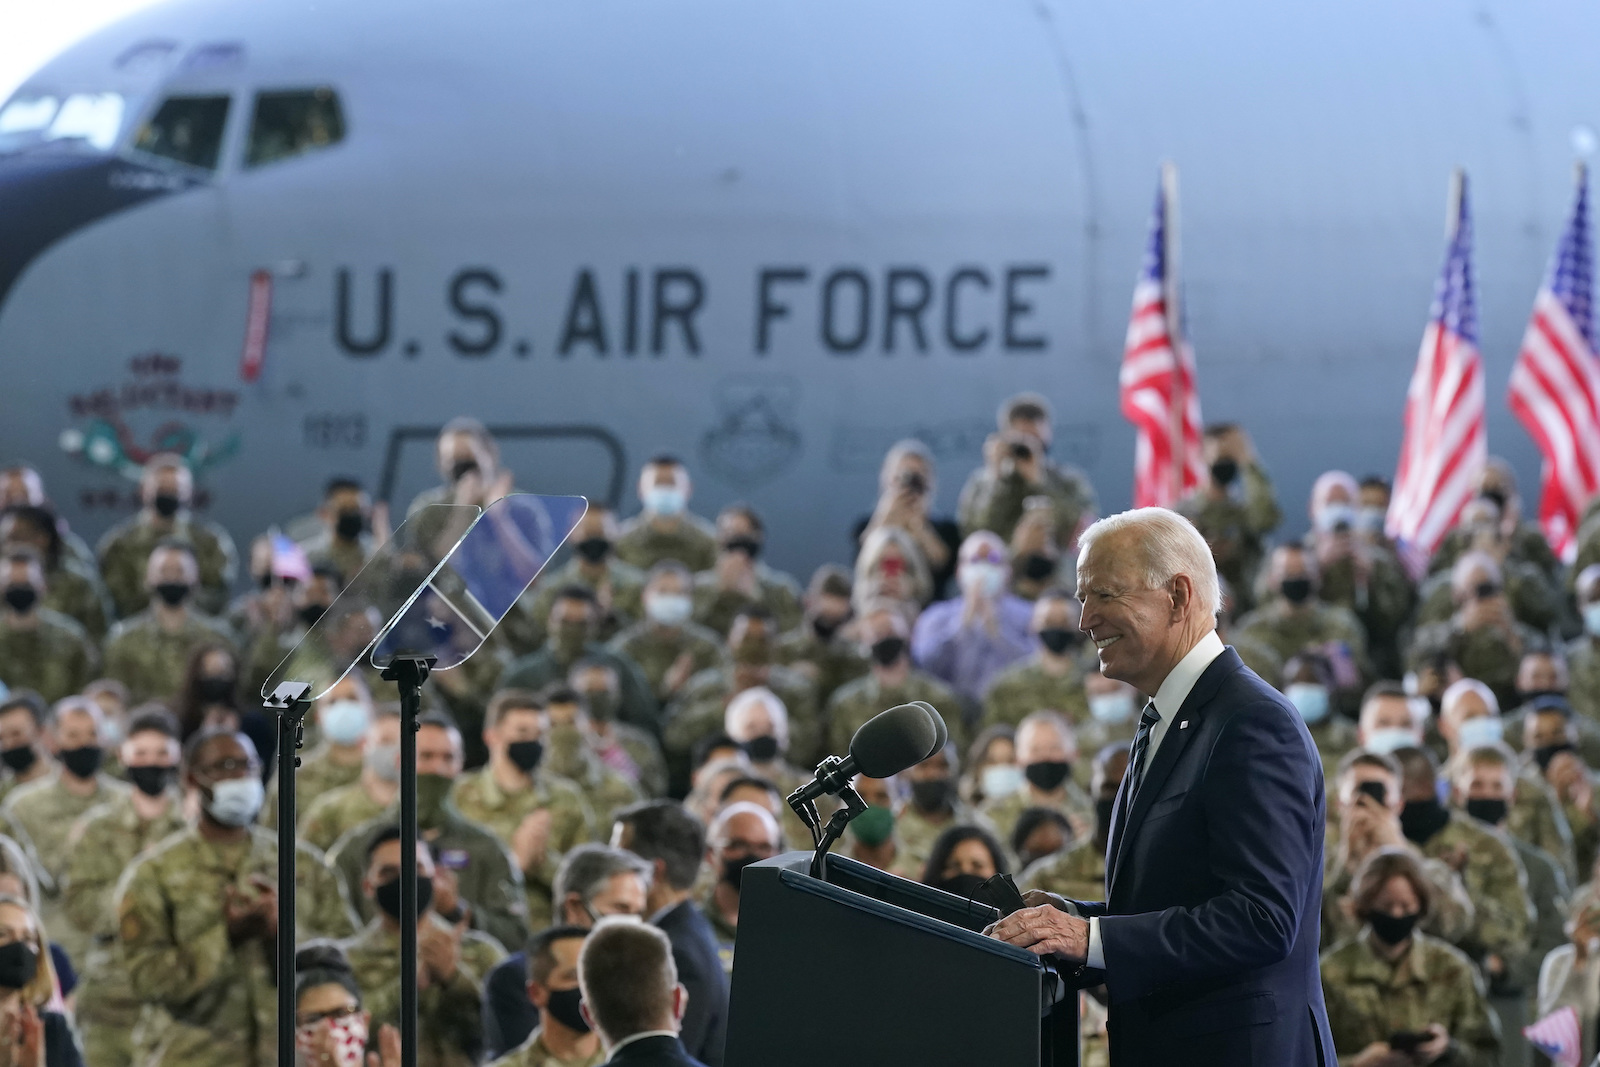 Biden warns Russia it faces 'robust' response for harmful actions as he  begins European visit - Japan Today